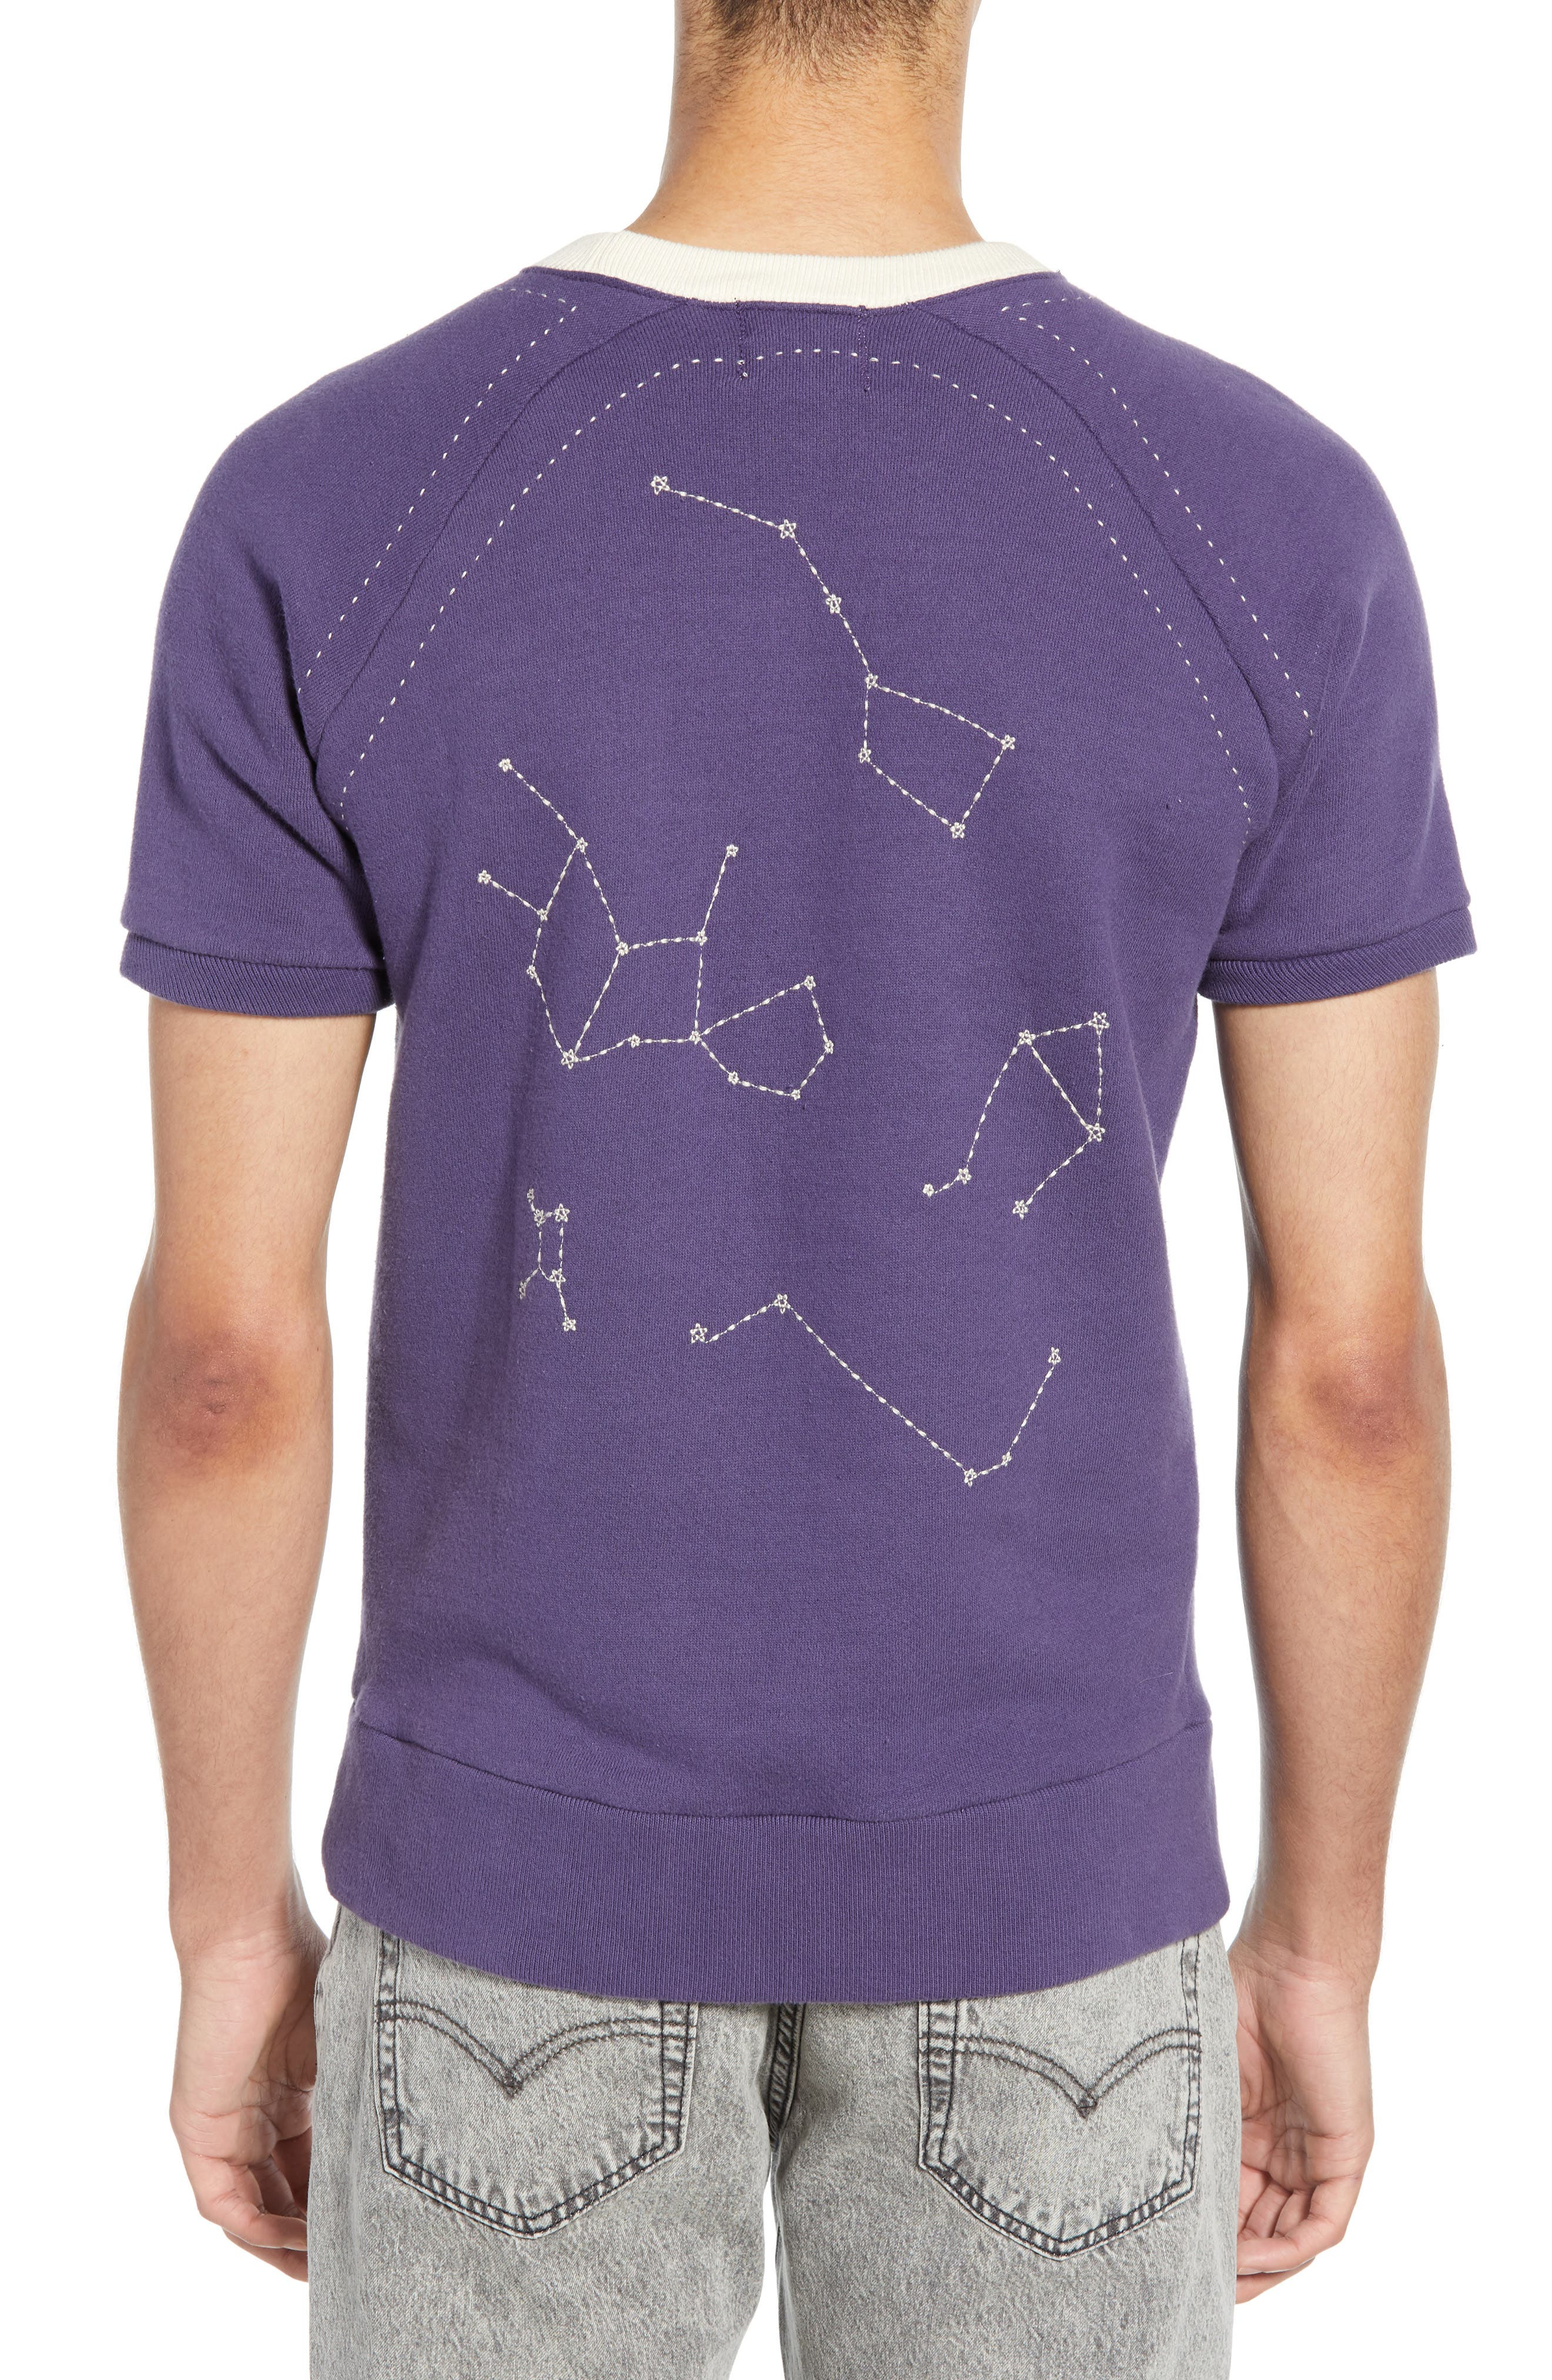 LEVI'S<SUP>®</SUP> VINTAGE CLOTHING, 1950s Slim Fit Short Sleeve Sweatshirt, Alternate thumbnail 2, color, STAR CHART EMBROIDERED